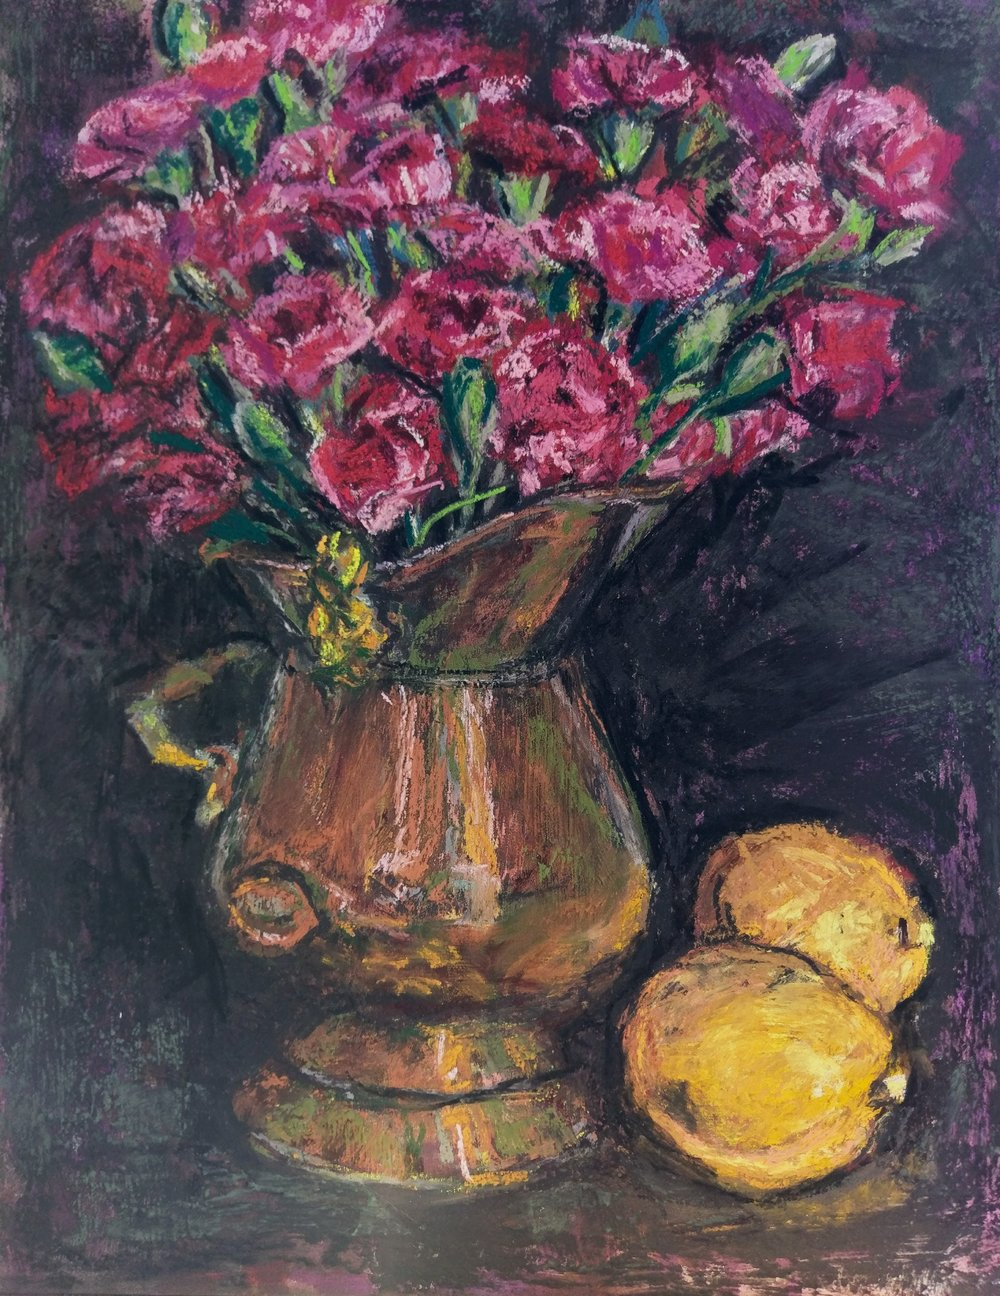 Carnations with Lemons